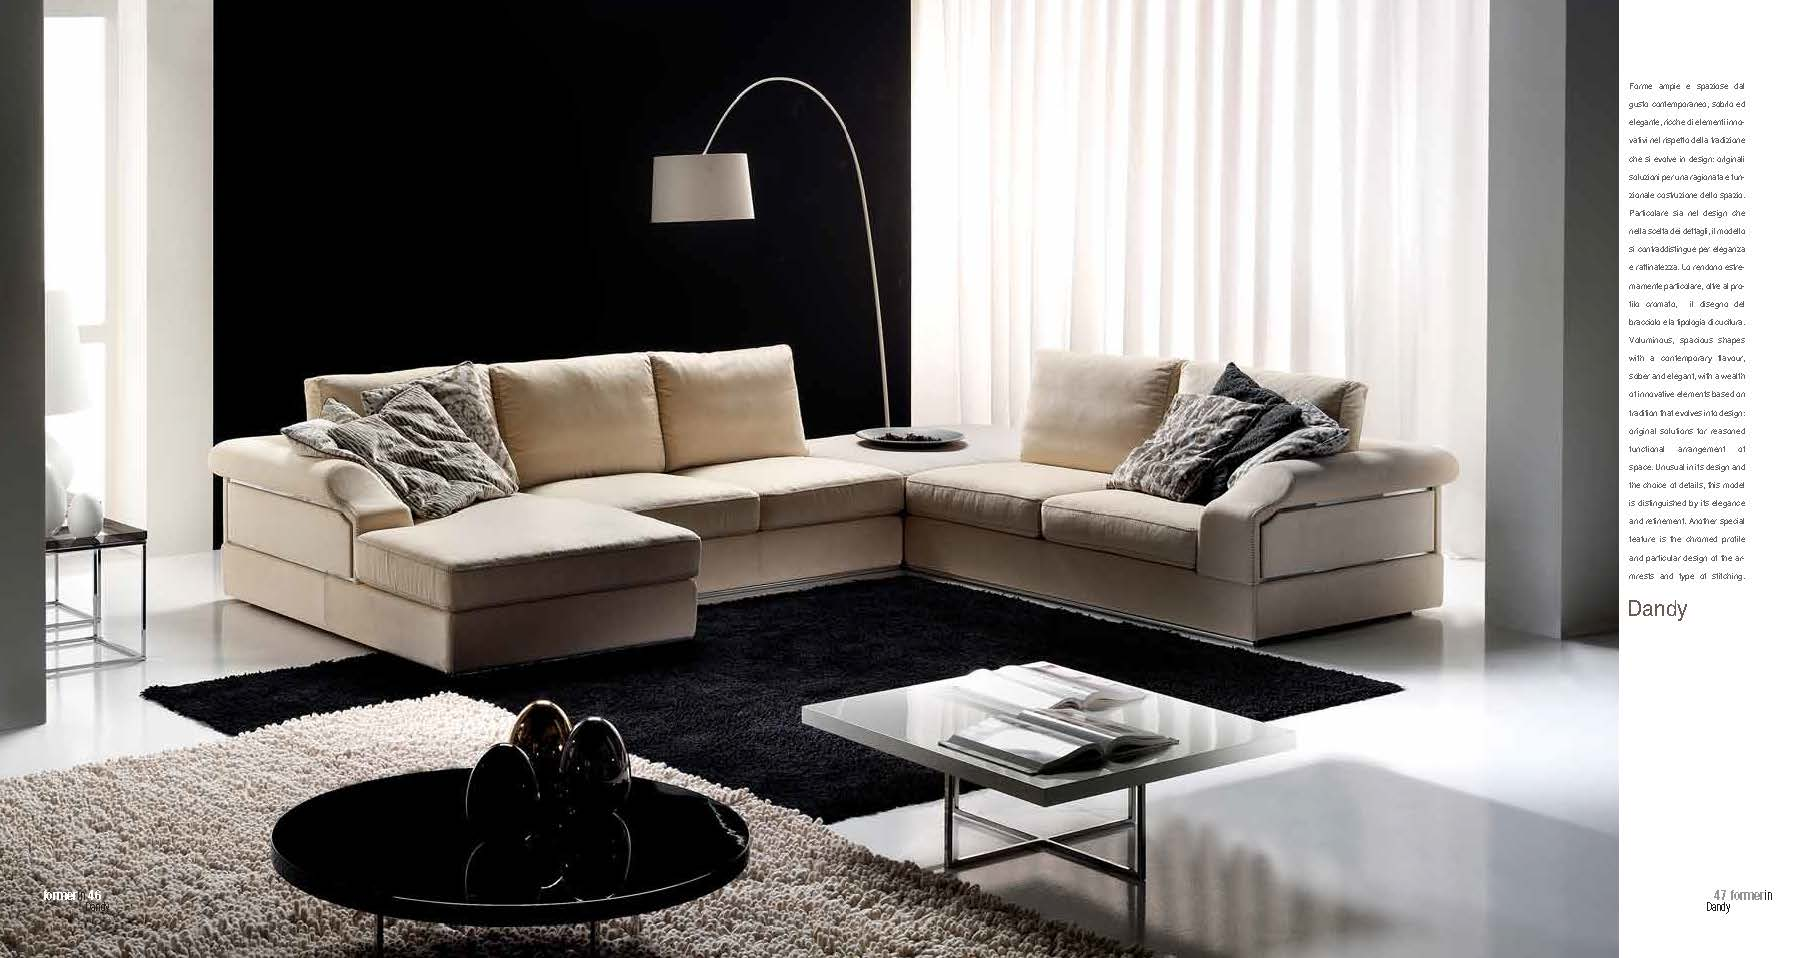 Brands Formerin Modern Living Room, Italy Dandy